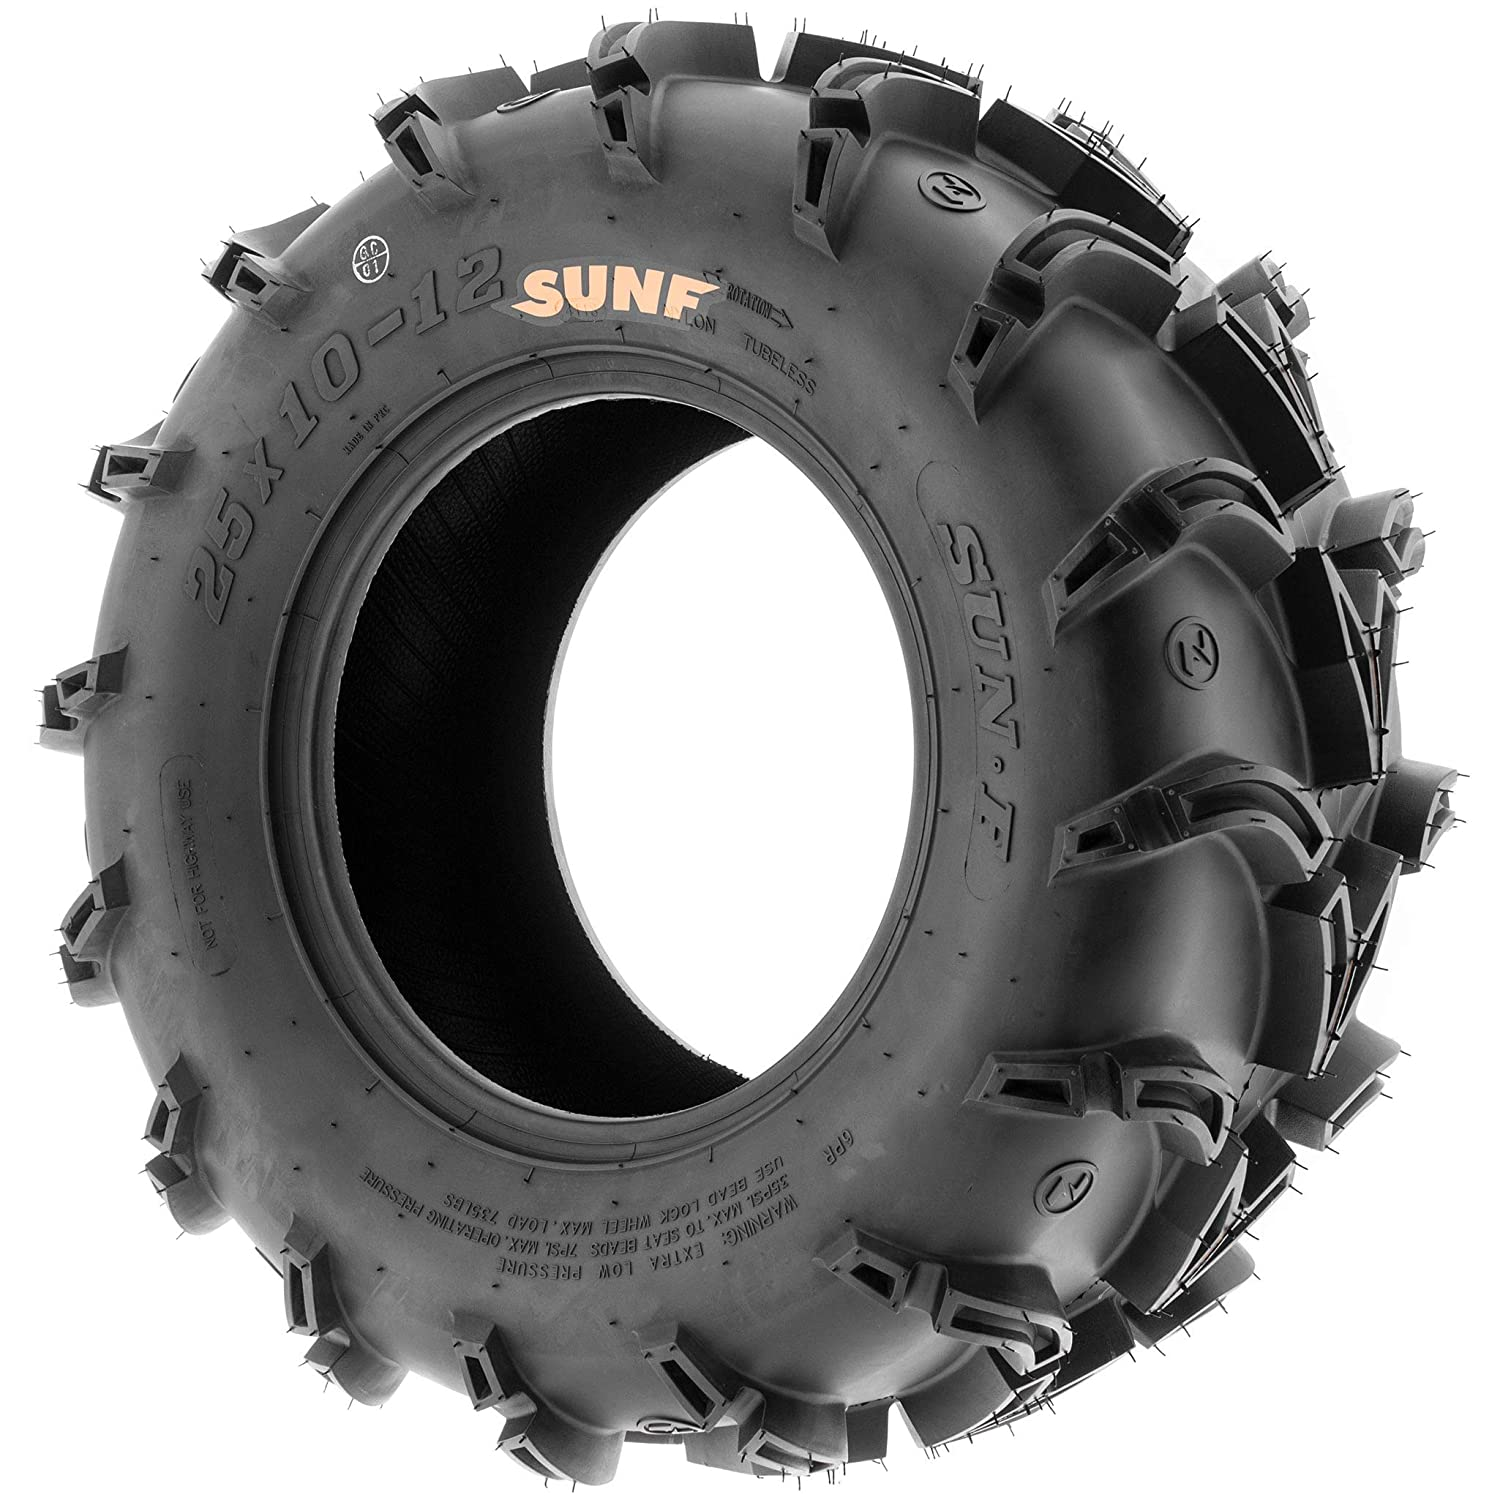 SunF Mud Race Replacement ATV UTV 6 Ply Tires 25x8-12 25x8x12 Tubeless A050, Set of 4